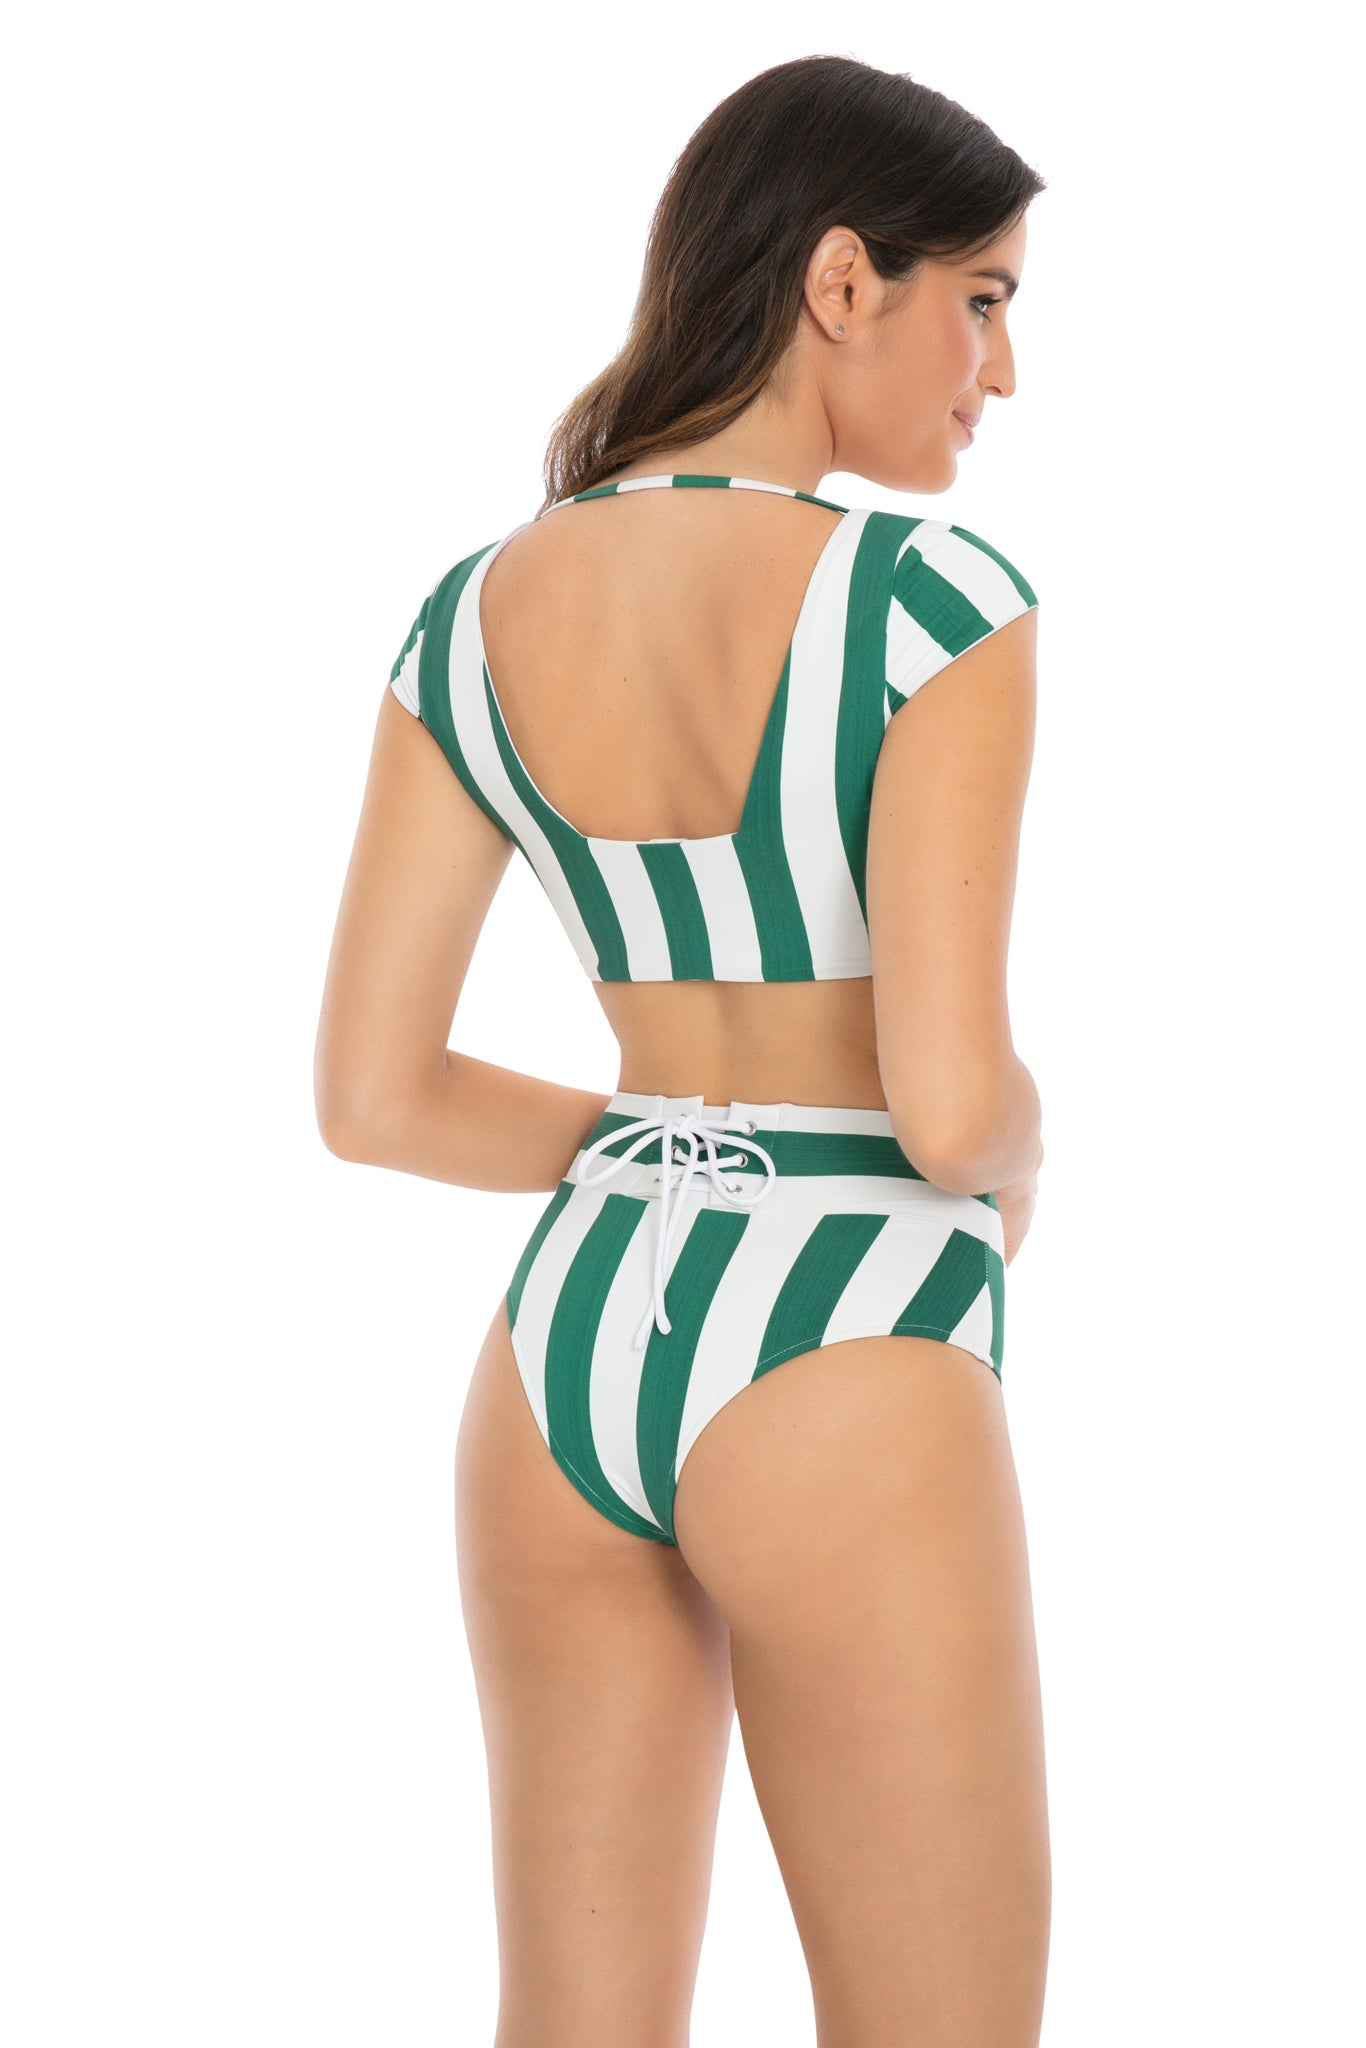 Henley high waist bottom in green and white stripe back view